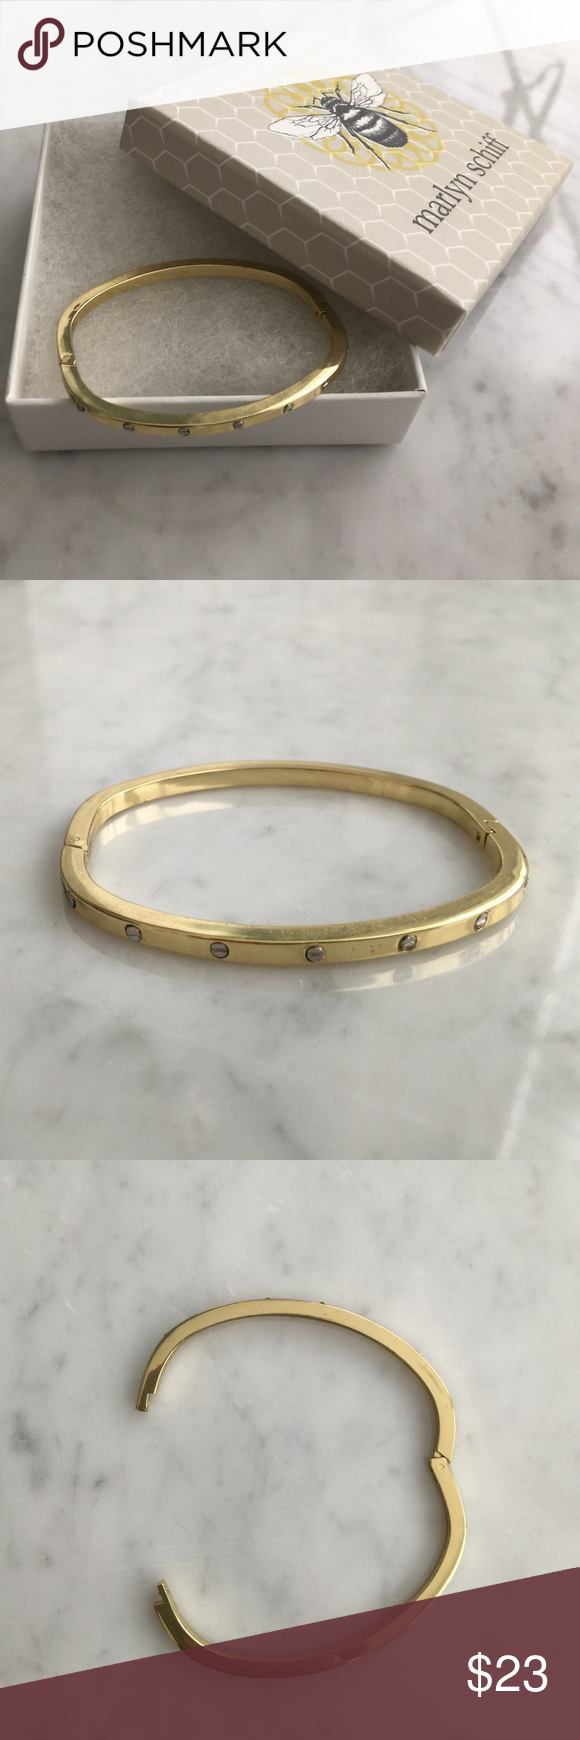 bangle product camuto tone bracelet gallery in set goldtone head lyst metallic gold jewelry vince nail normal